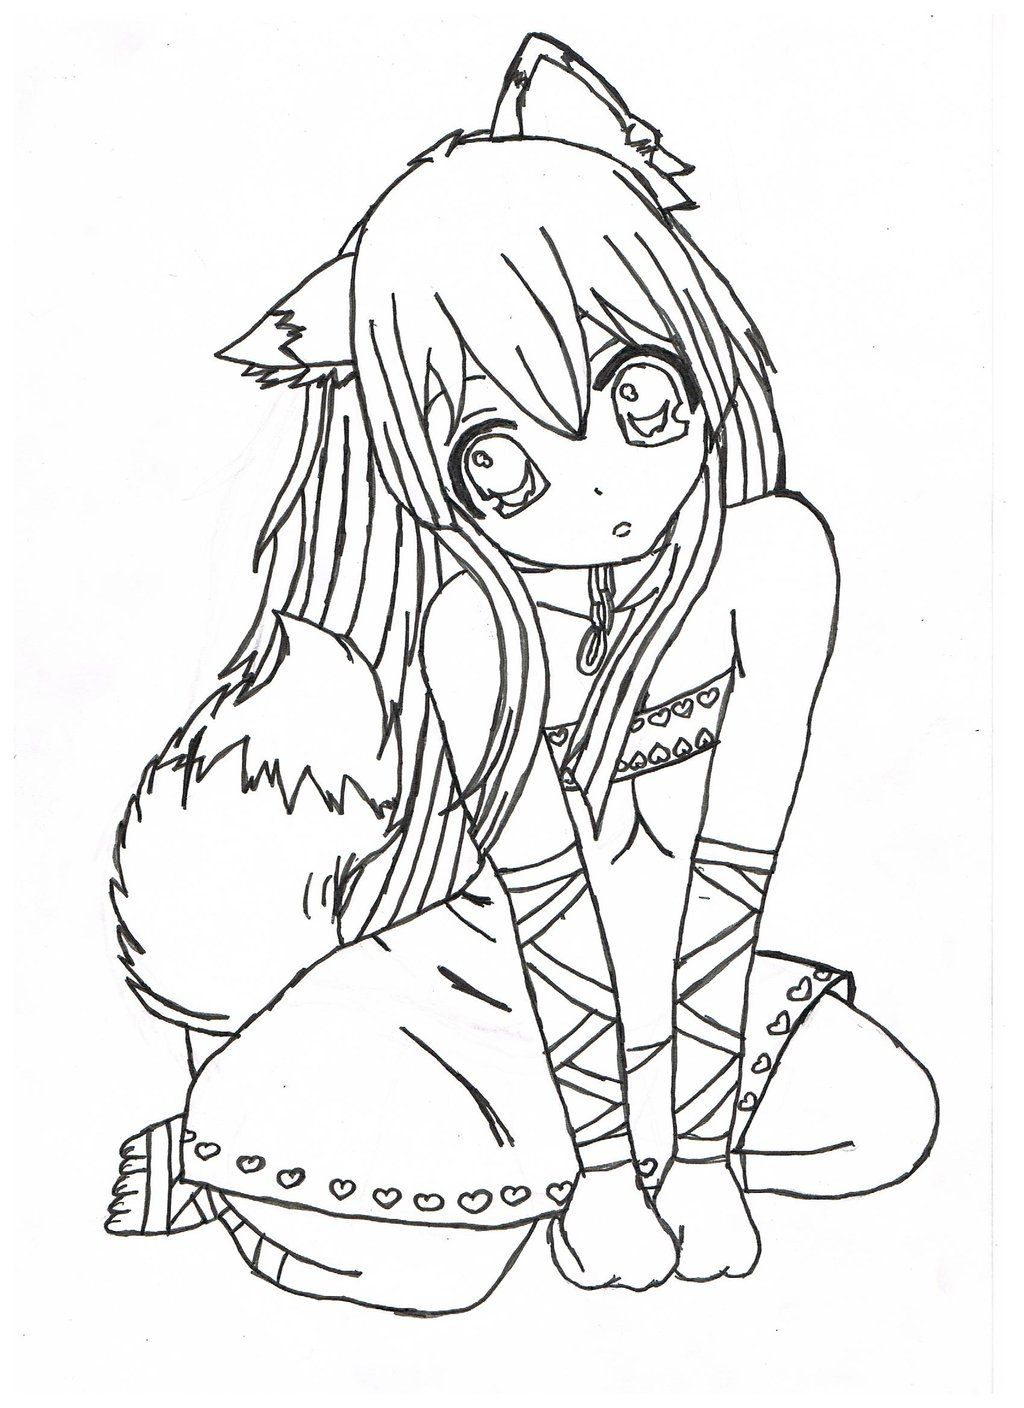 Trendy Defeabaaaba Have Anime Coloring Pages Jpg 1024 1408 Fox Coloring Page Cute Coloring Pages Coloring Pages For Girls